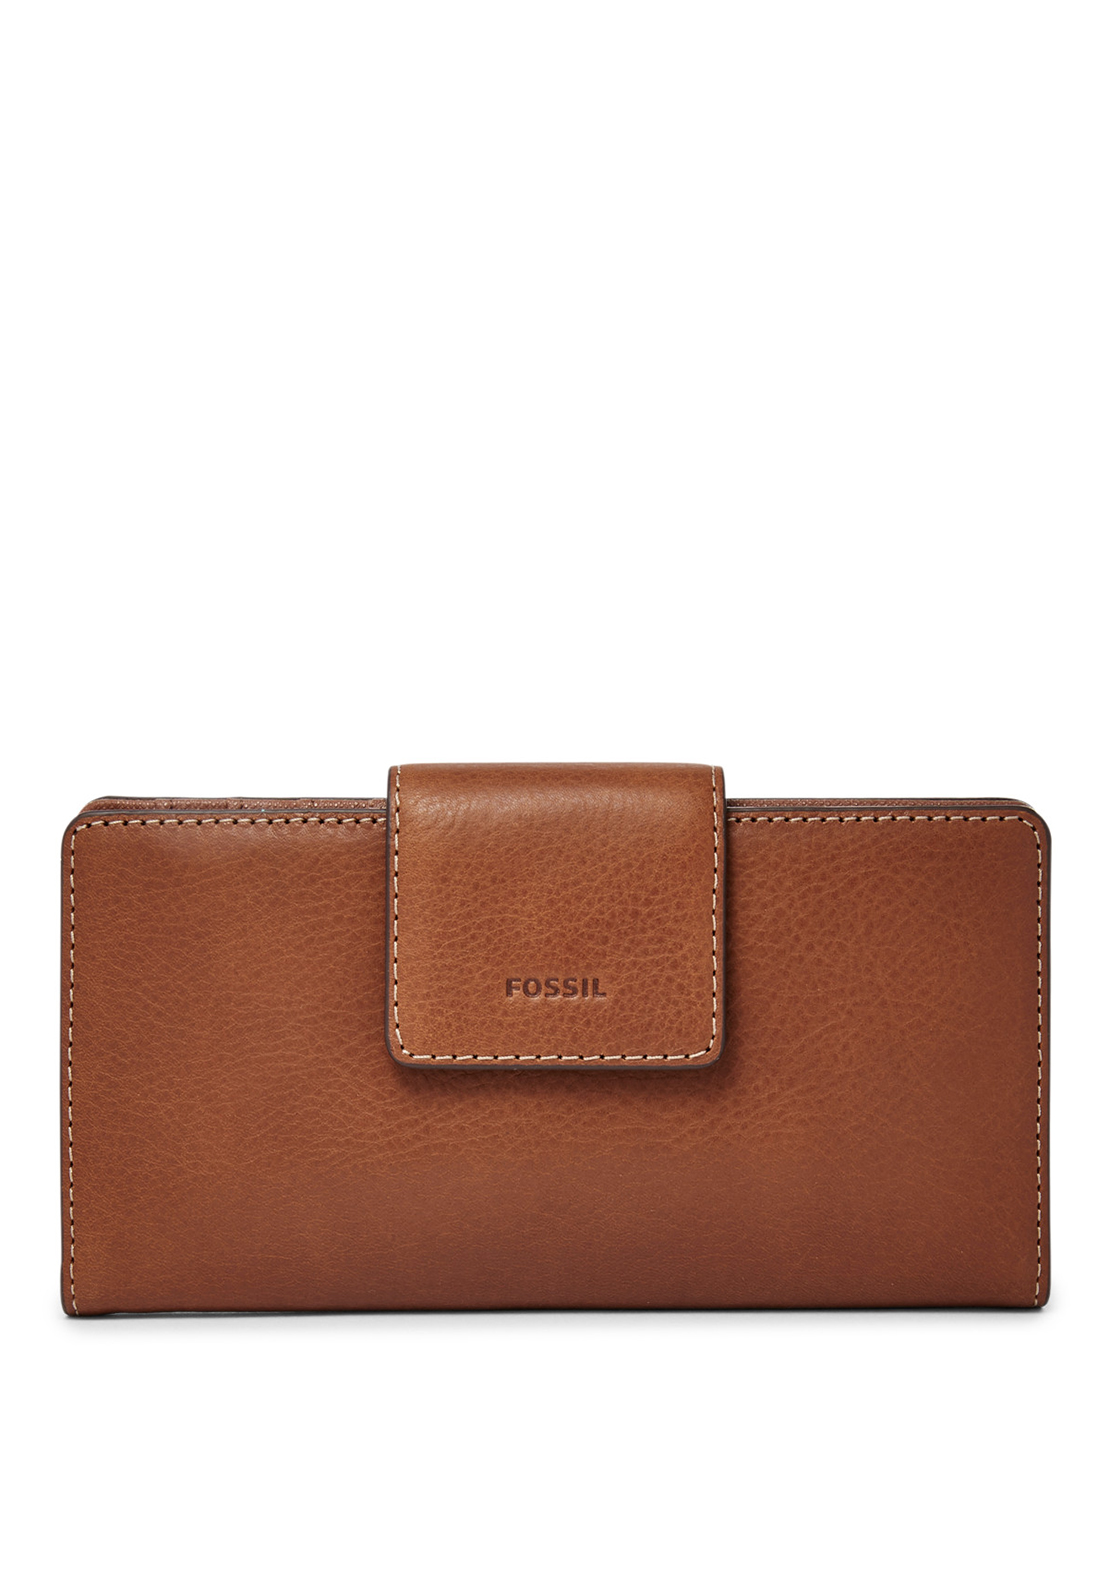 Fossil Emma Leather Tab Purse, Brown